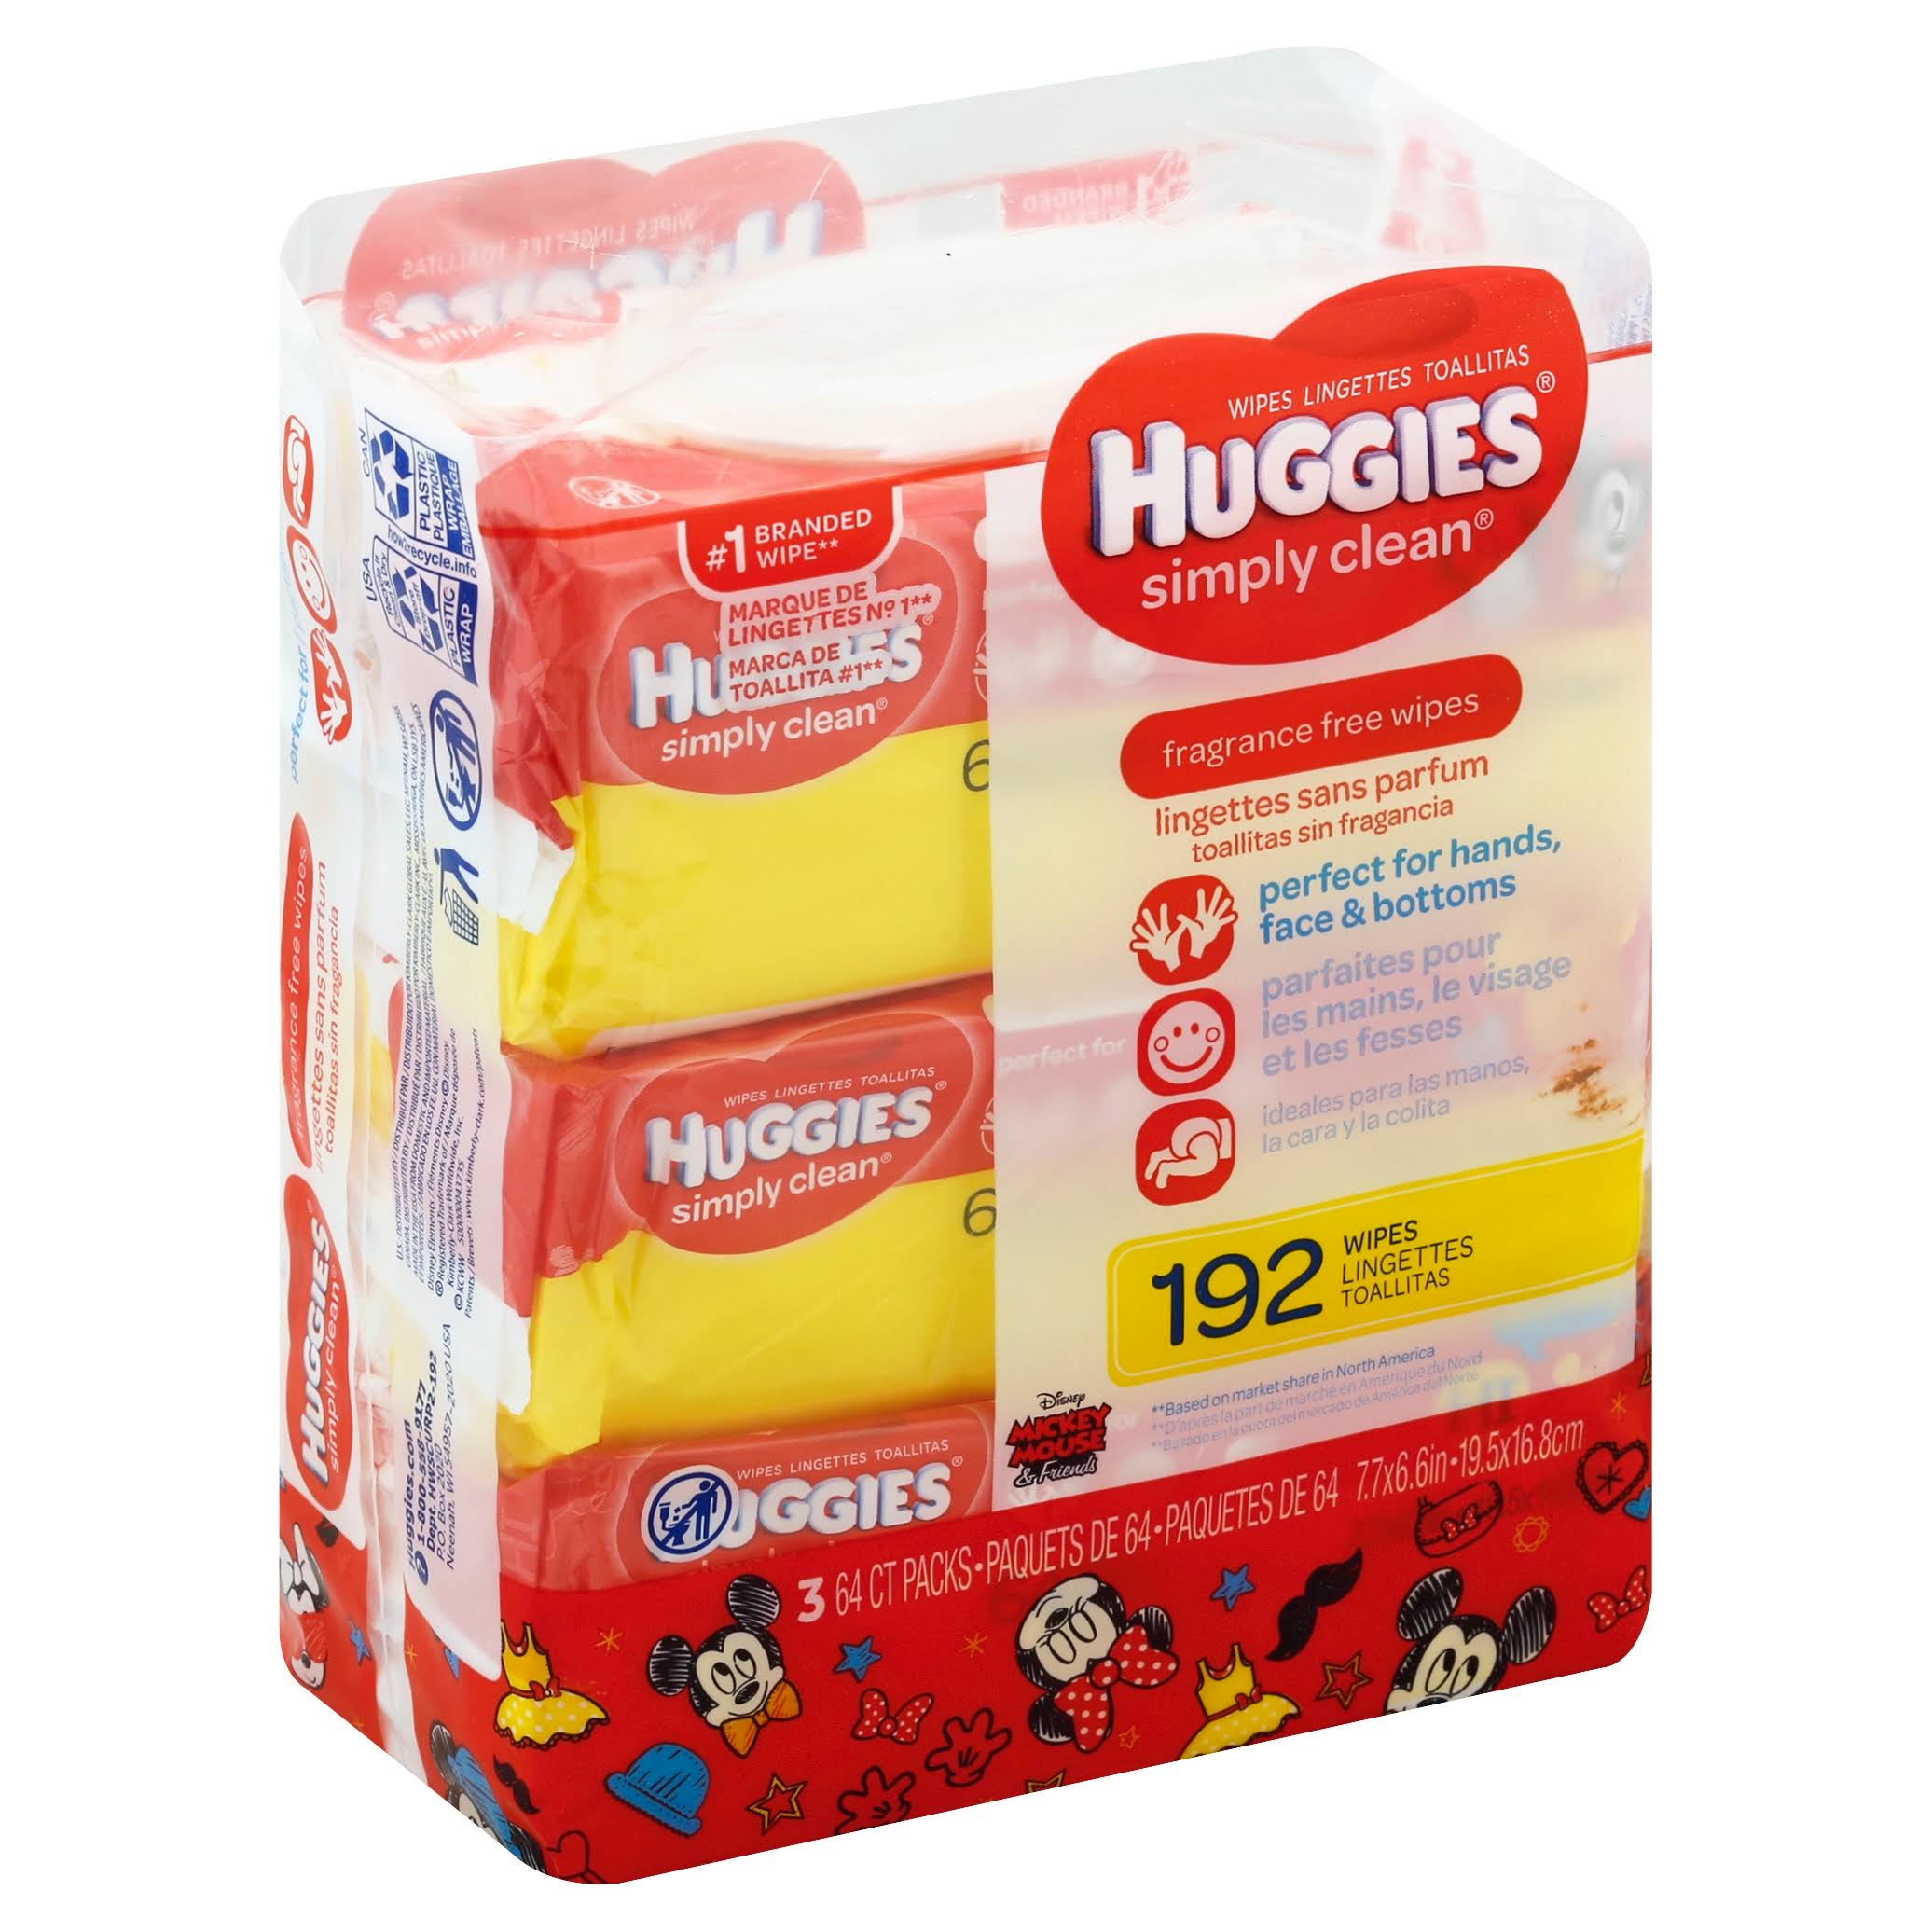 Huggies Simply Clean Fragrance-Free Baby Wipes - 193 Wipes, 3 Packs